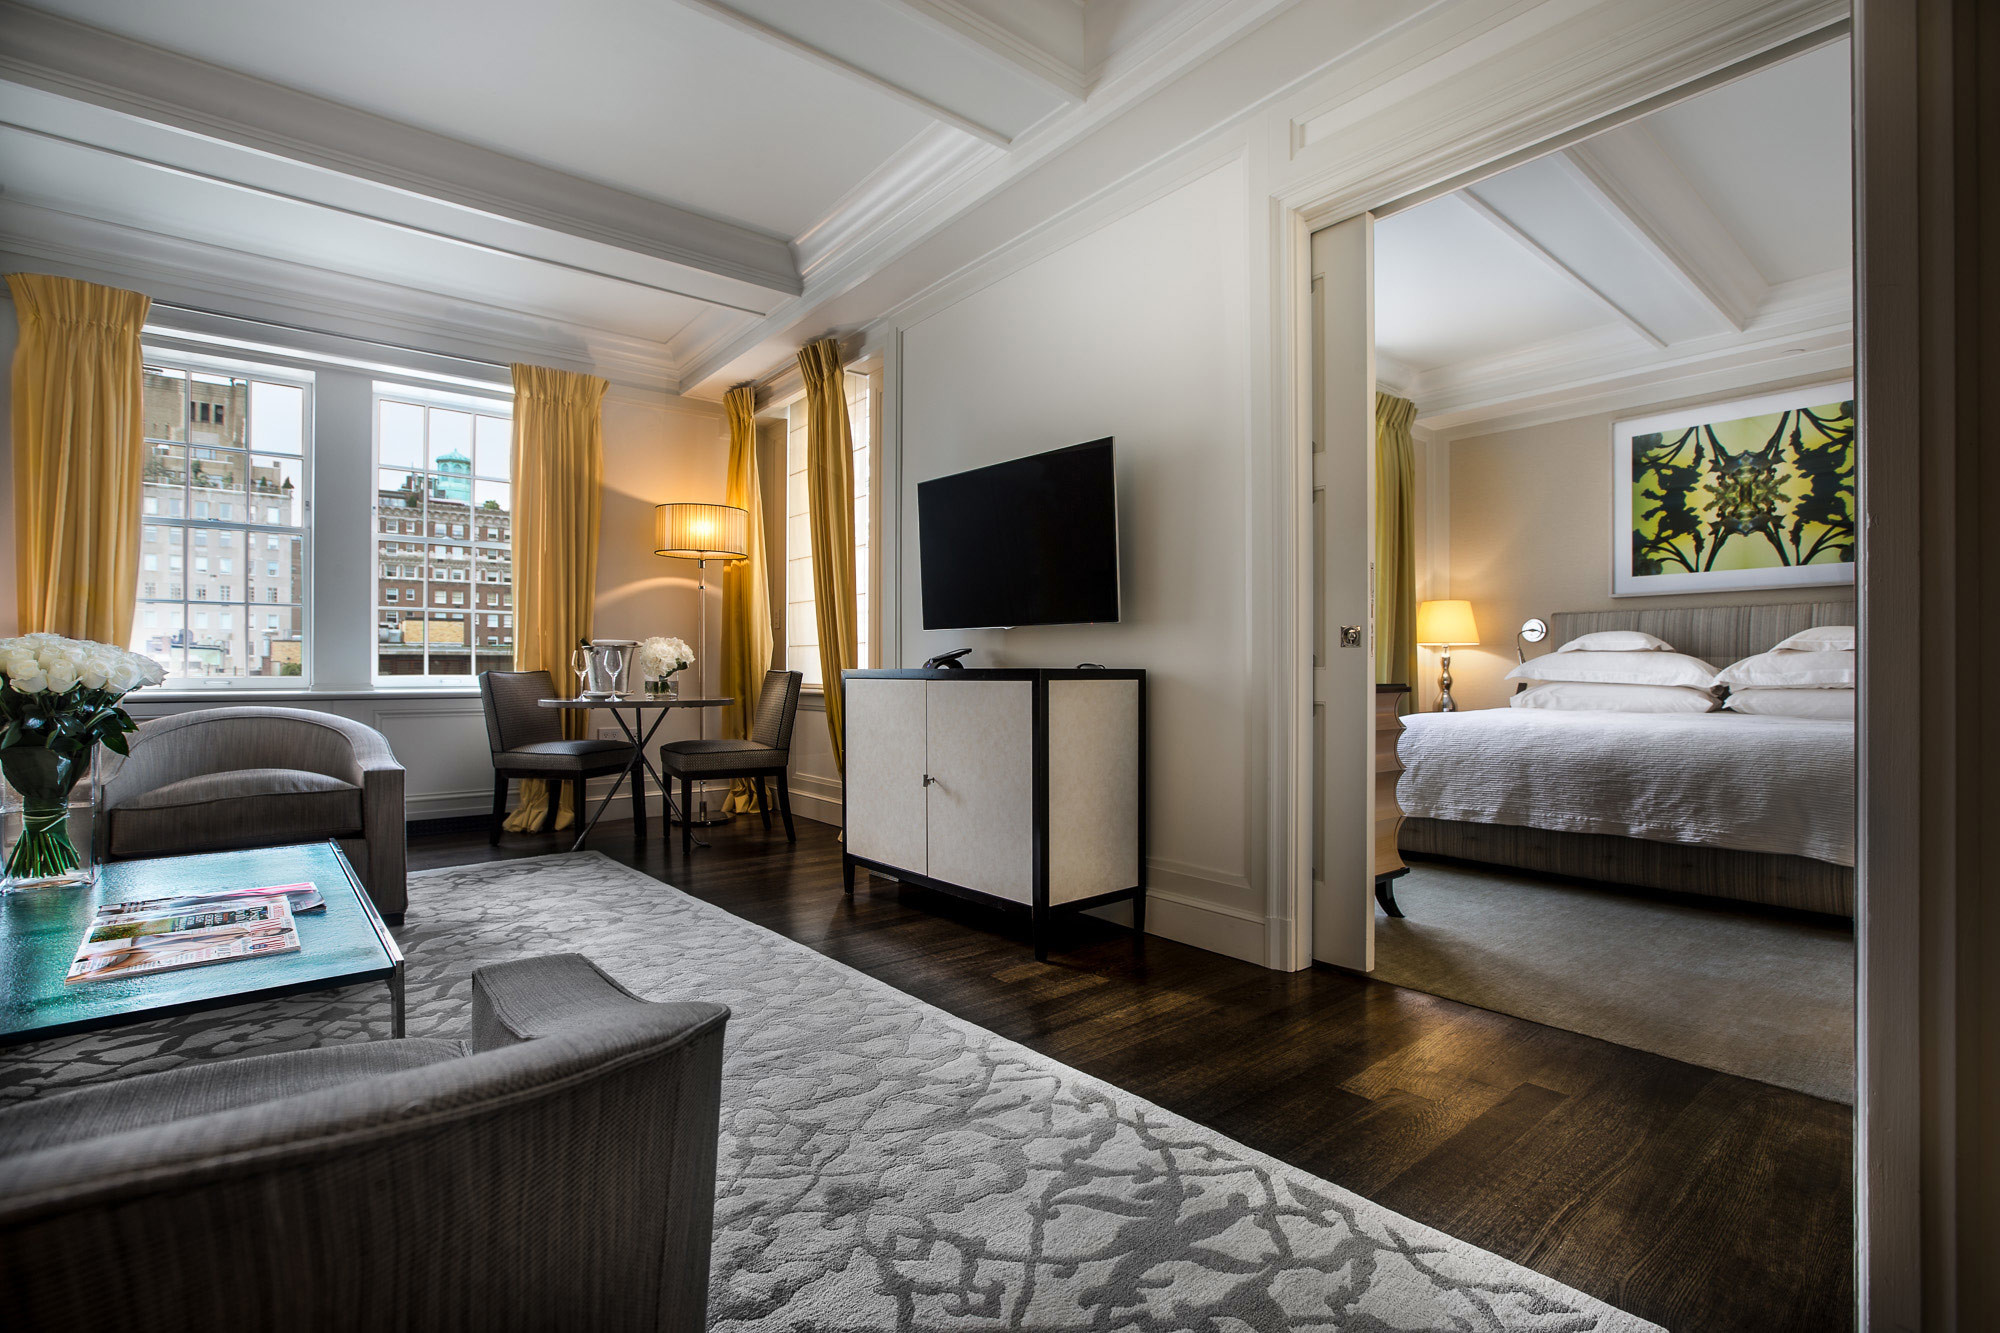 Luxury Hotel Suites nyc 5 star luxury hotel rooms & suites | the mark hotel | new york